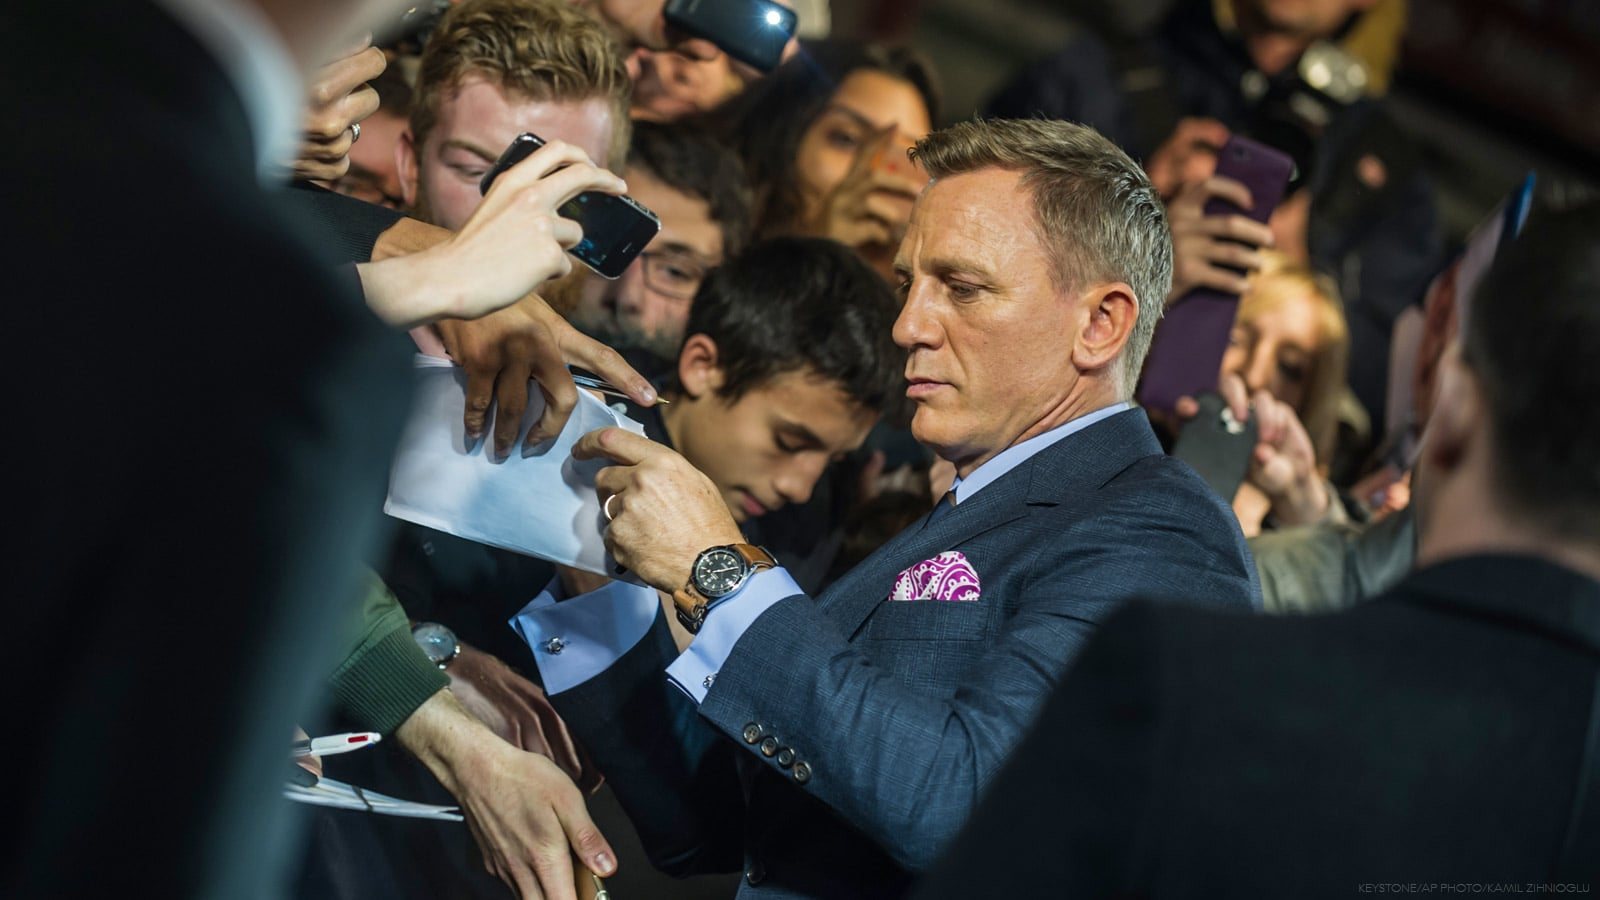 Picture of Daniel Craig signing autographs in a crowd of fans